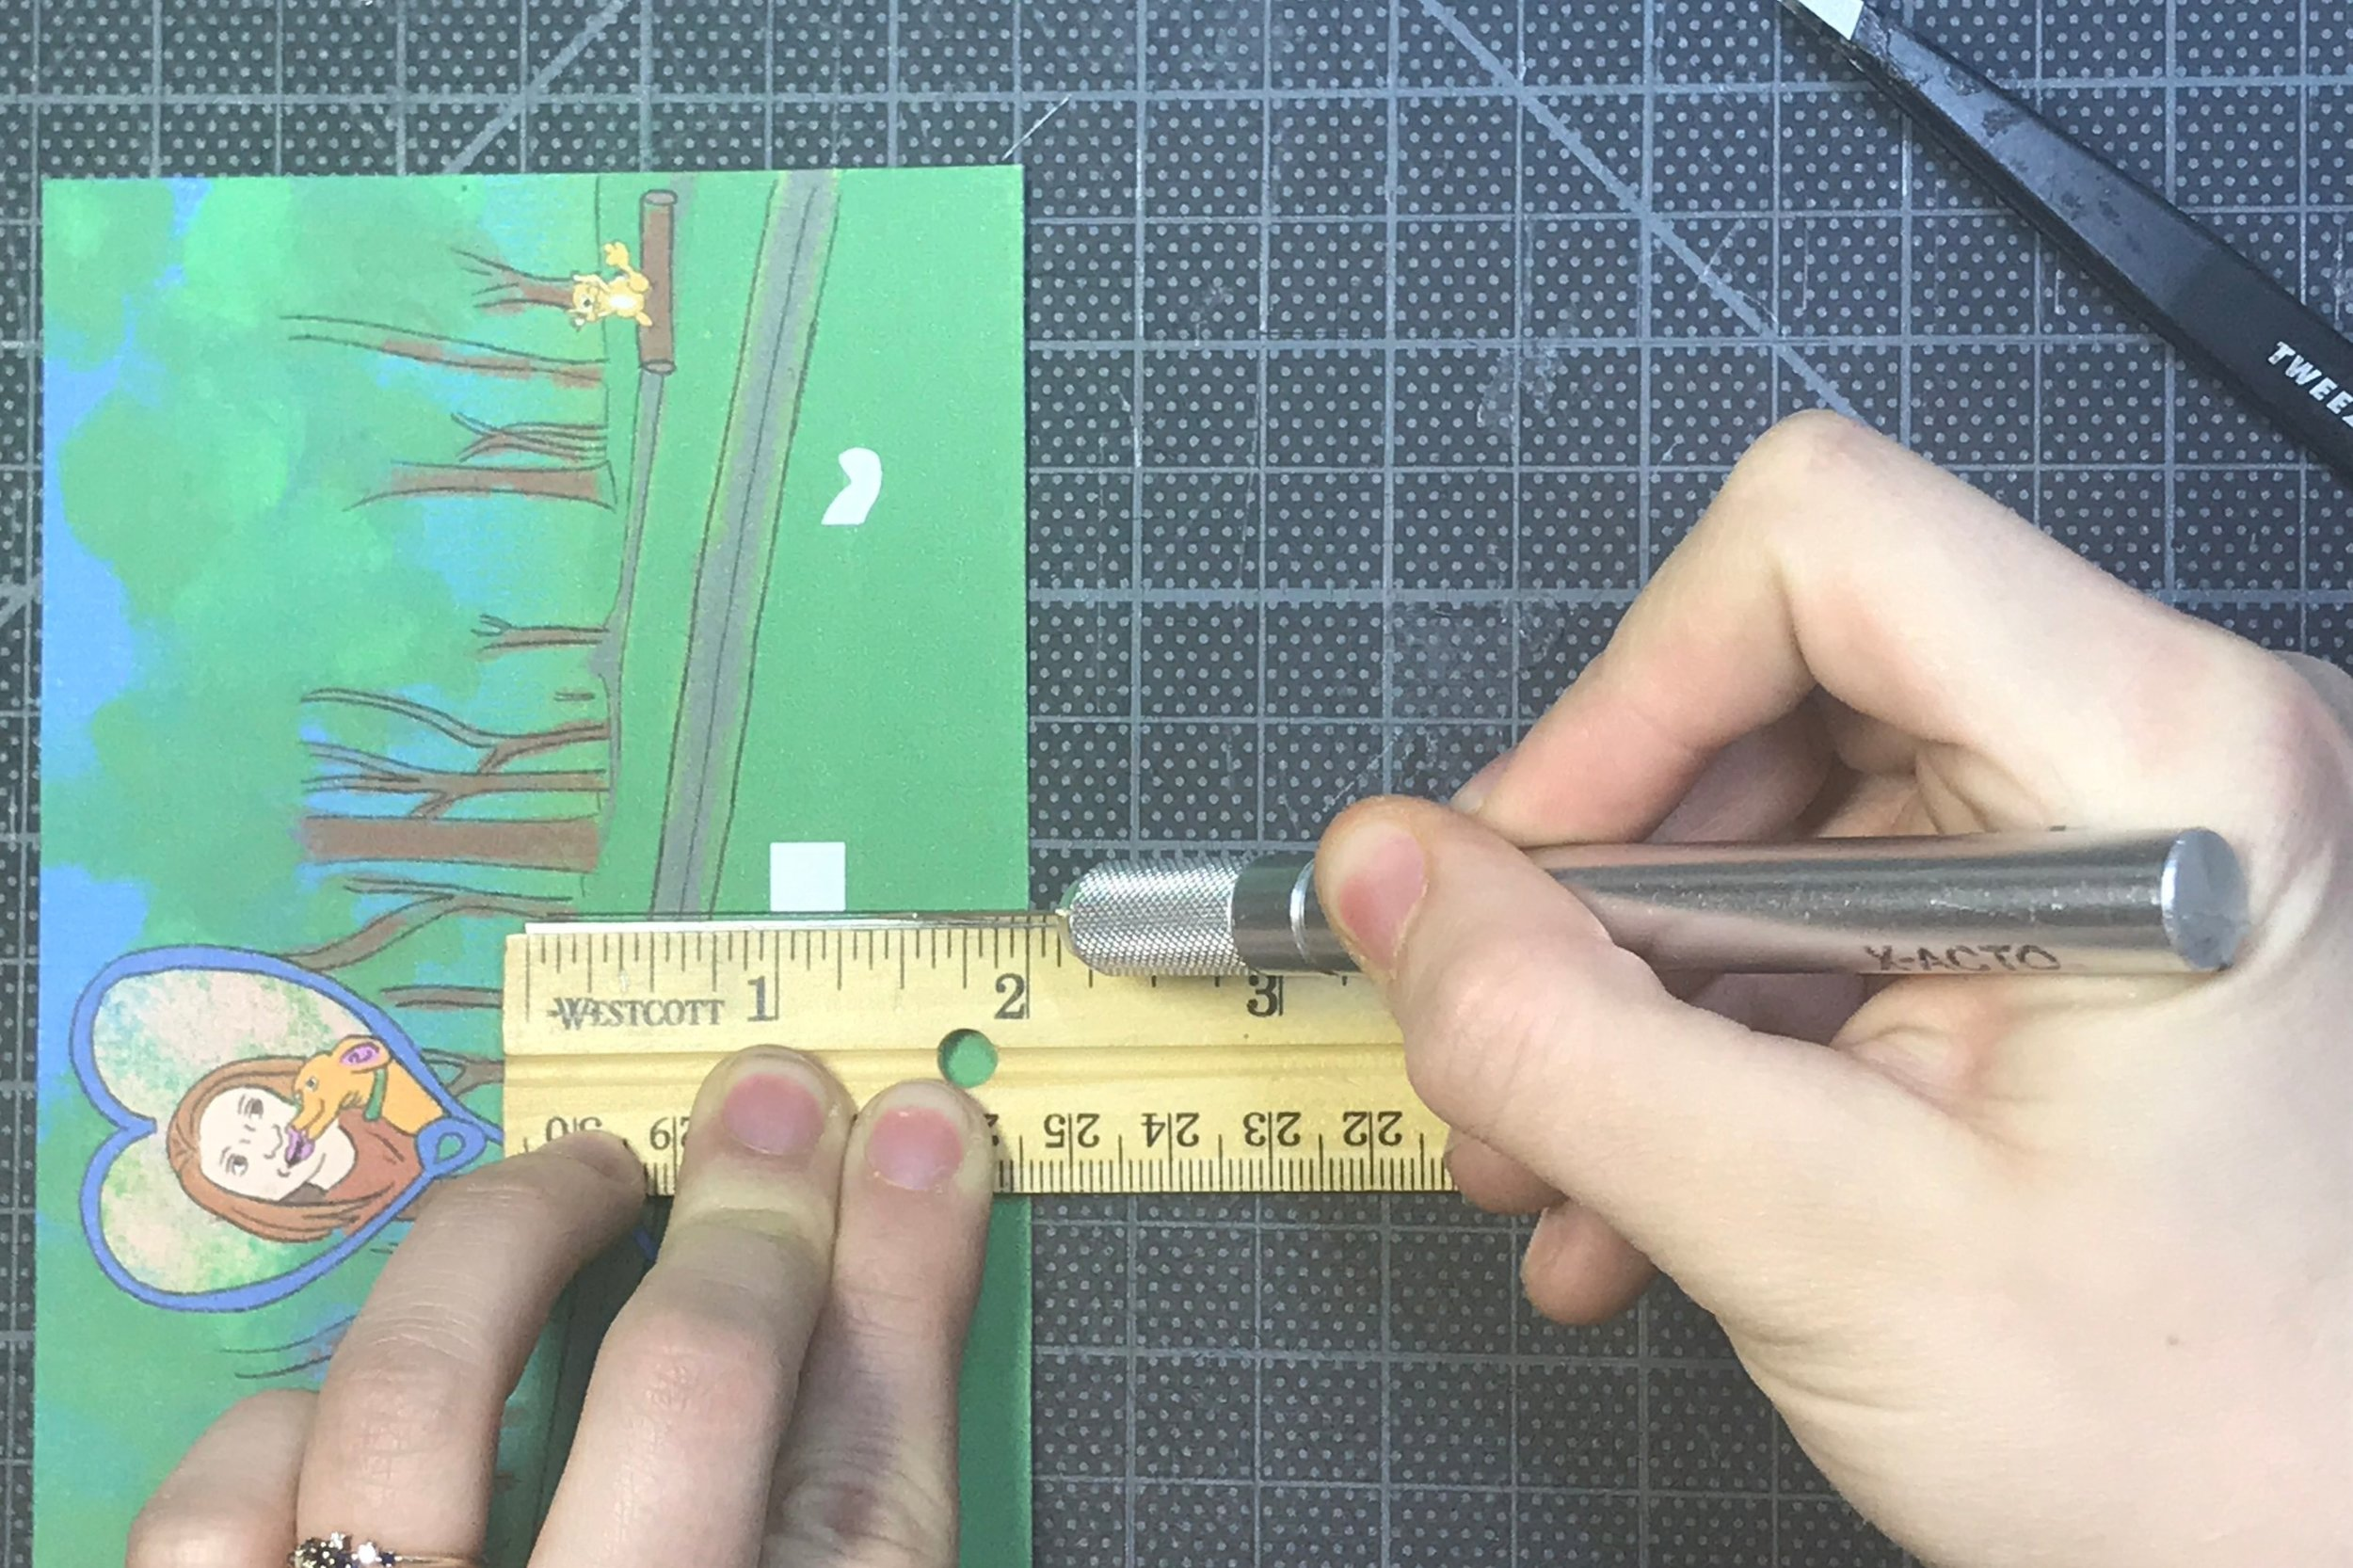 Cut the center line of your first postcard. The line is in the center of the card and runs two inches up from the bottom.